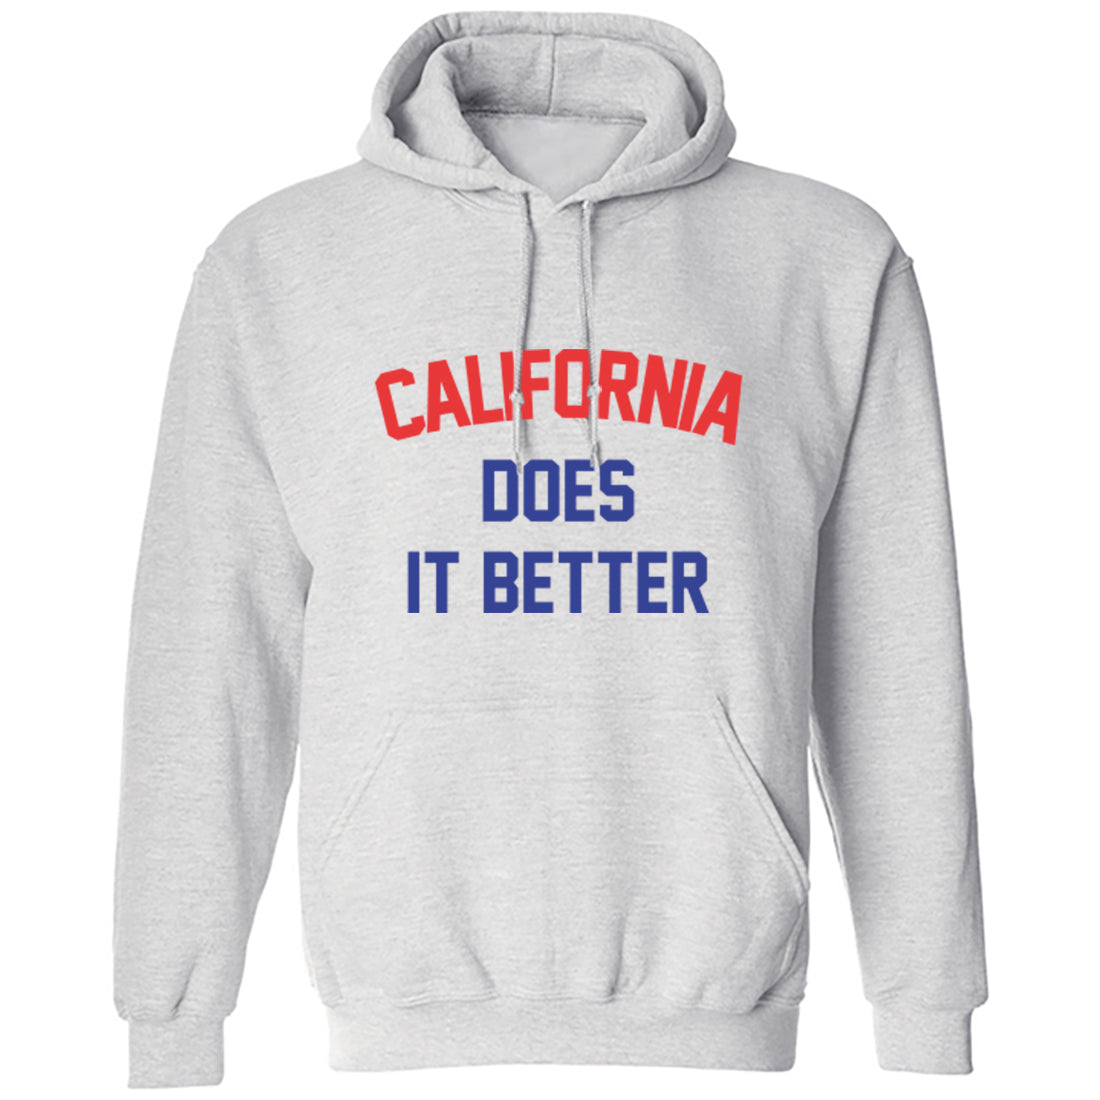 California Does Is Better Unisex Hoodie K1146 - Illustrated Identity Ltd.